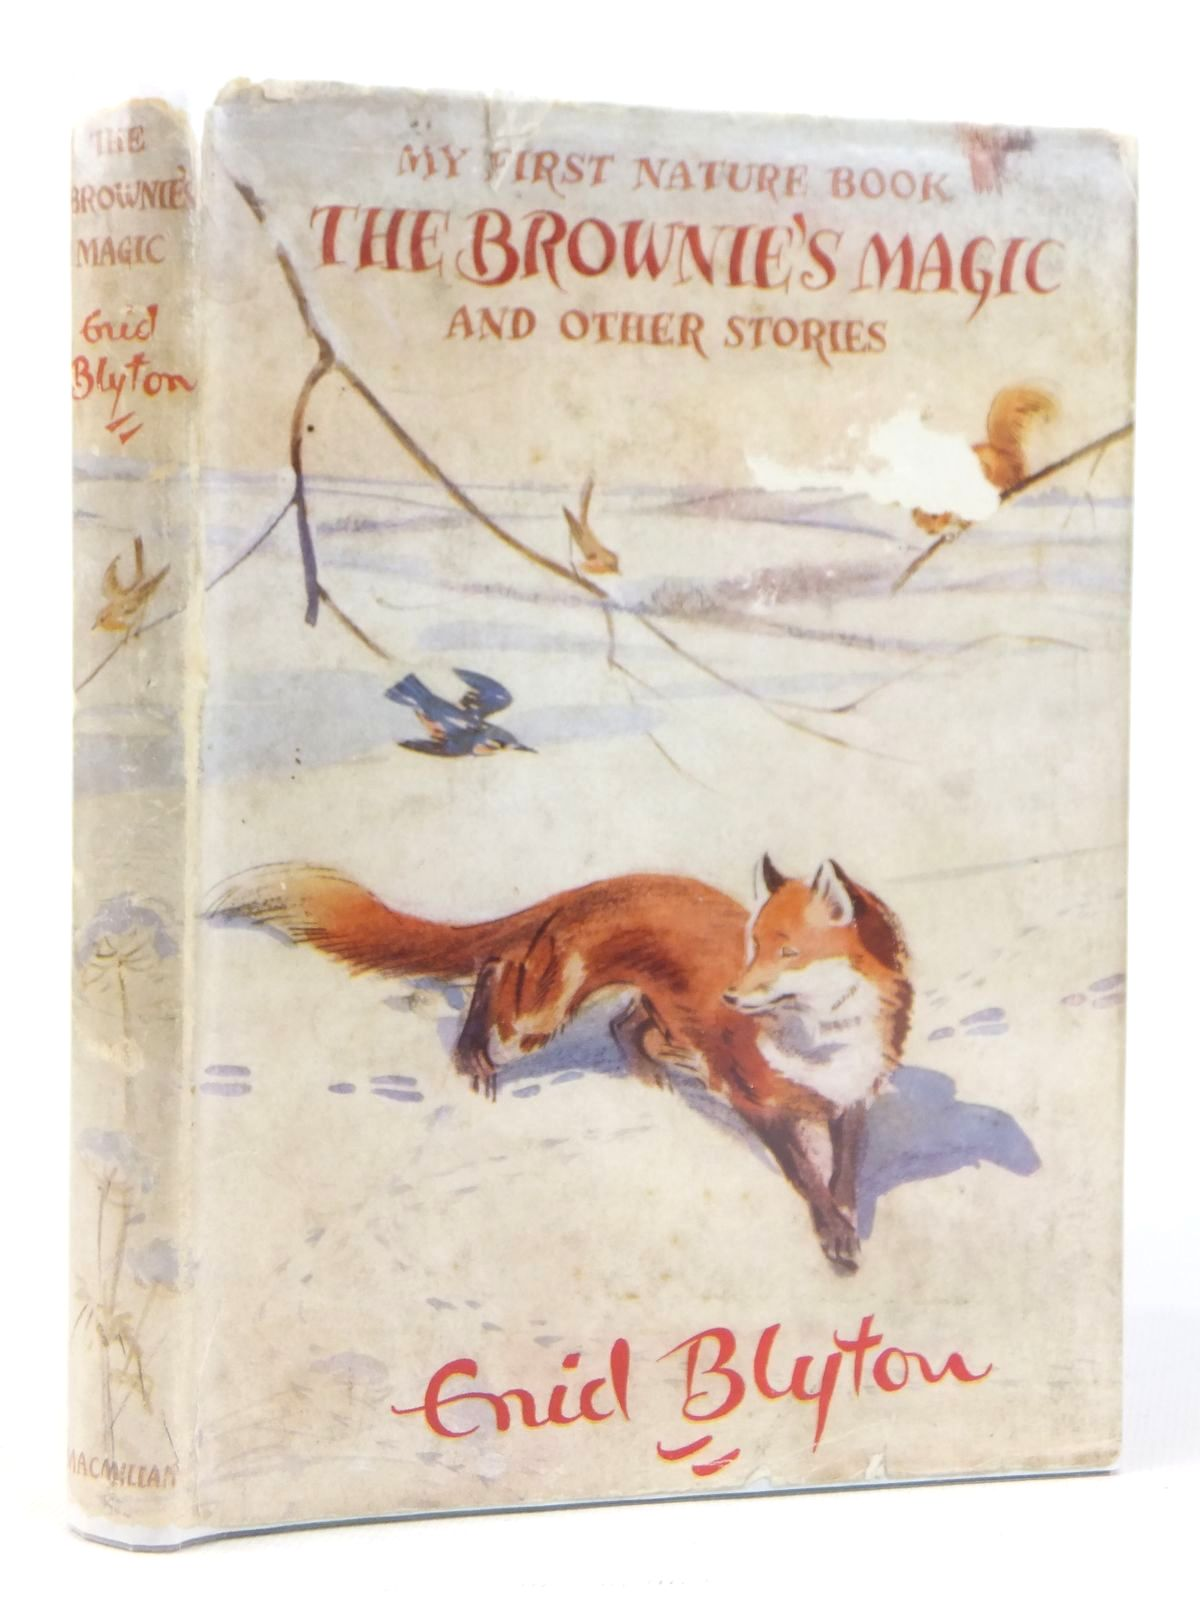 Photo of MY FIRST NATURE BOOK THE BROWNIE'S MAGIC AND OTHER STORIES written by Blyton, Enid illustrated by Soper, Eileen published by Macmillan & Co. Ltd. (STOCK CODE: 1608821)  for sale by Stella & Rose's Books